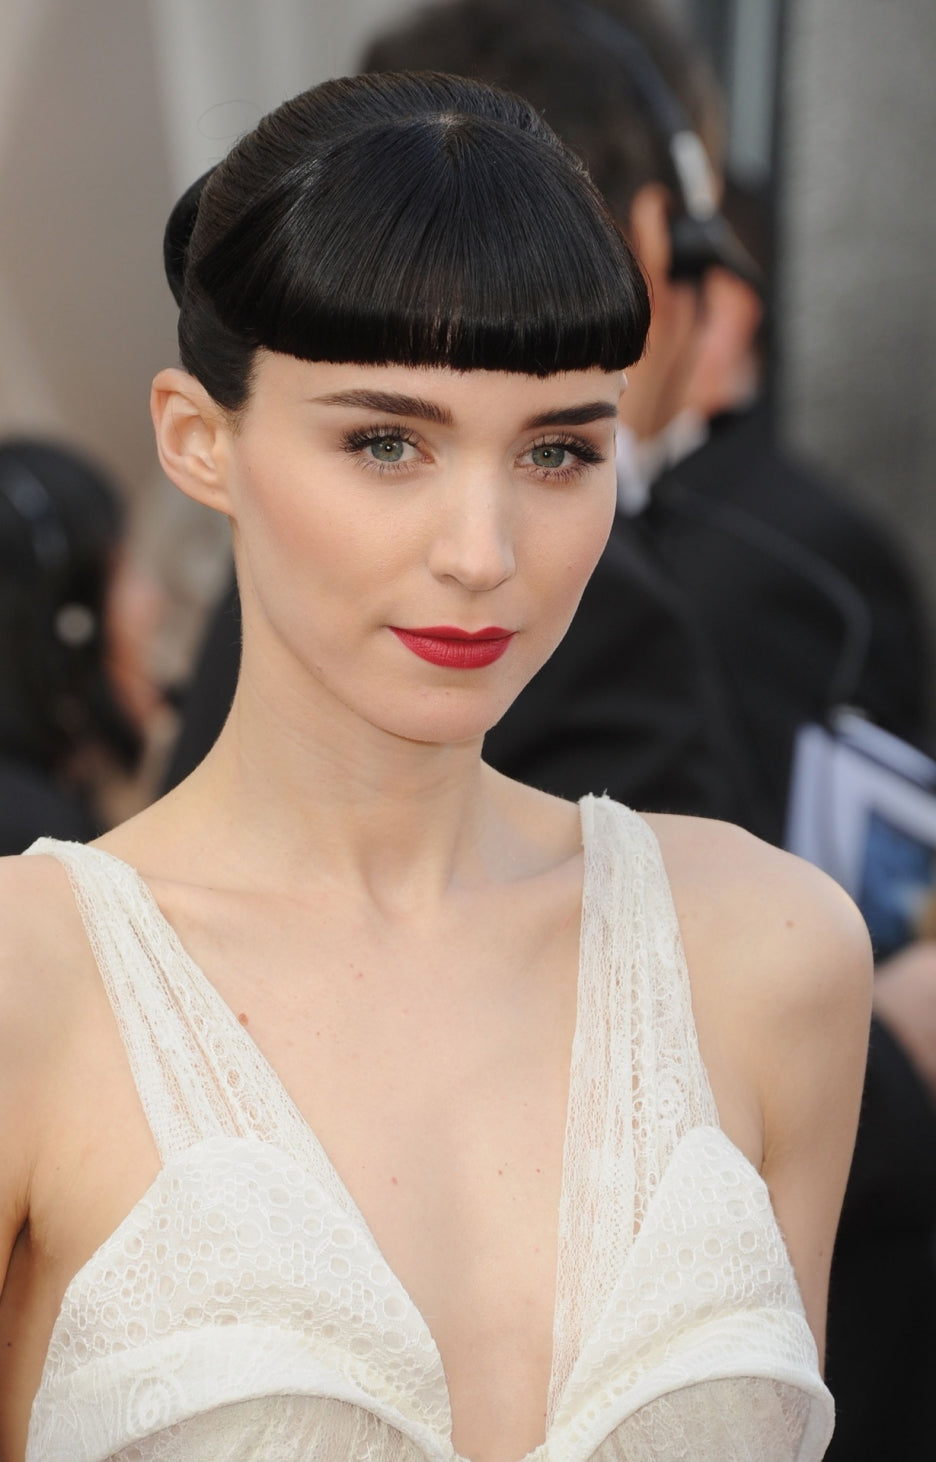 Fair & Fashionable: Our Favorite Pale Celebs – SummerSkin